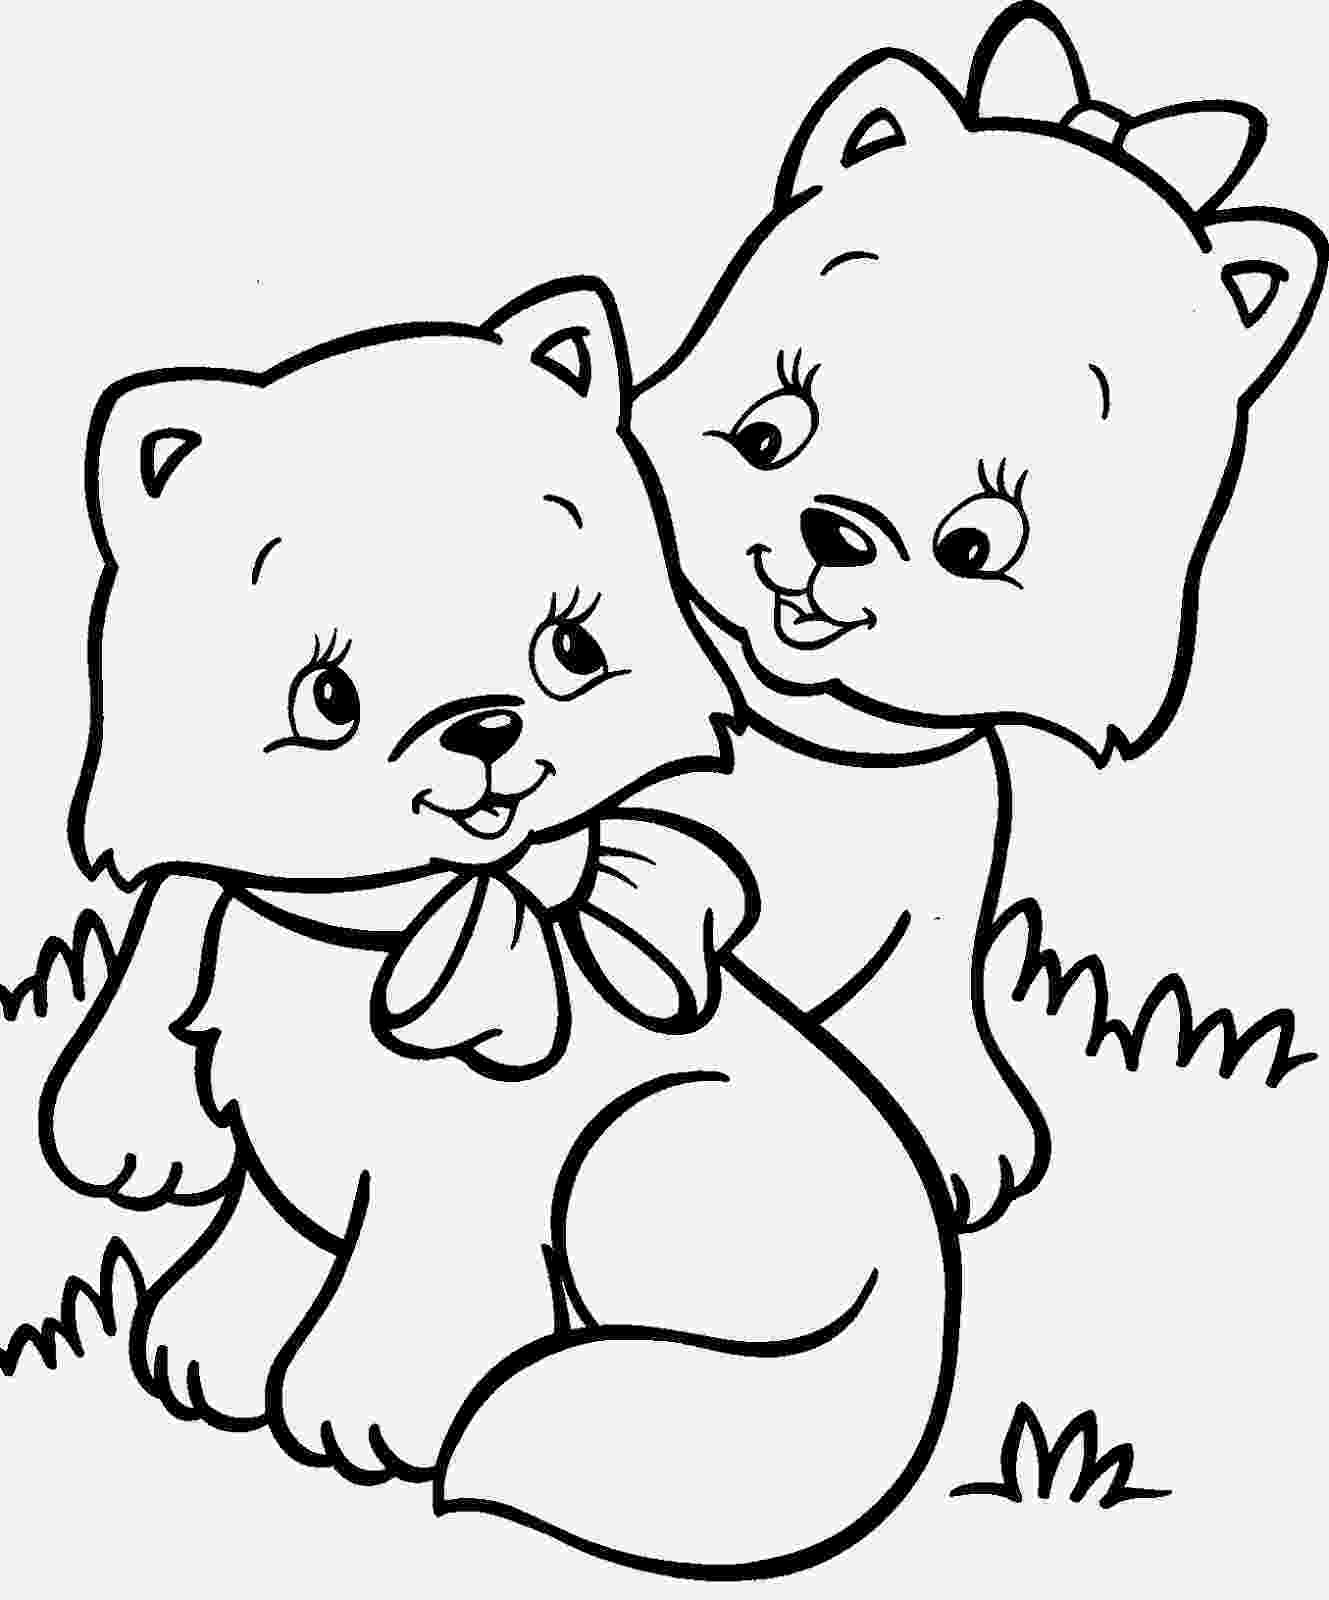 cat coloring pages free printable cat coloring pages for kids cat coloring pages